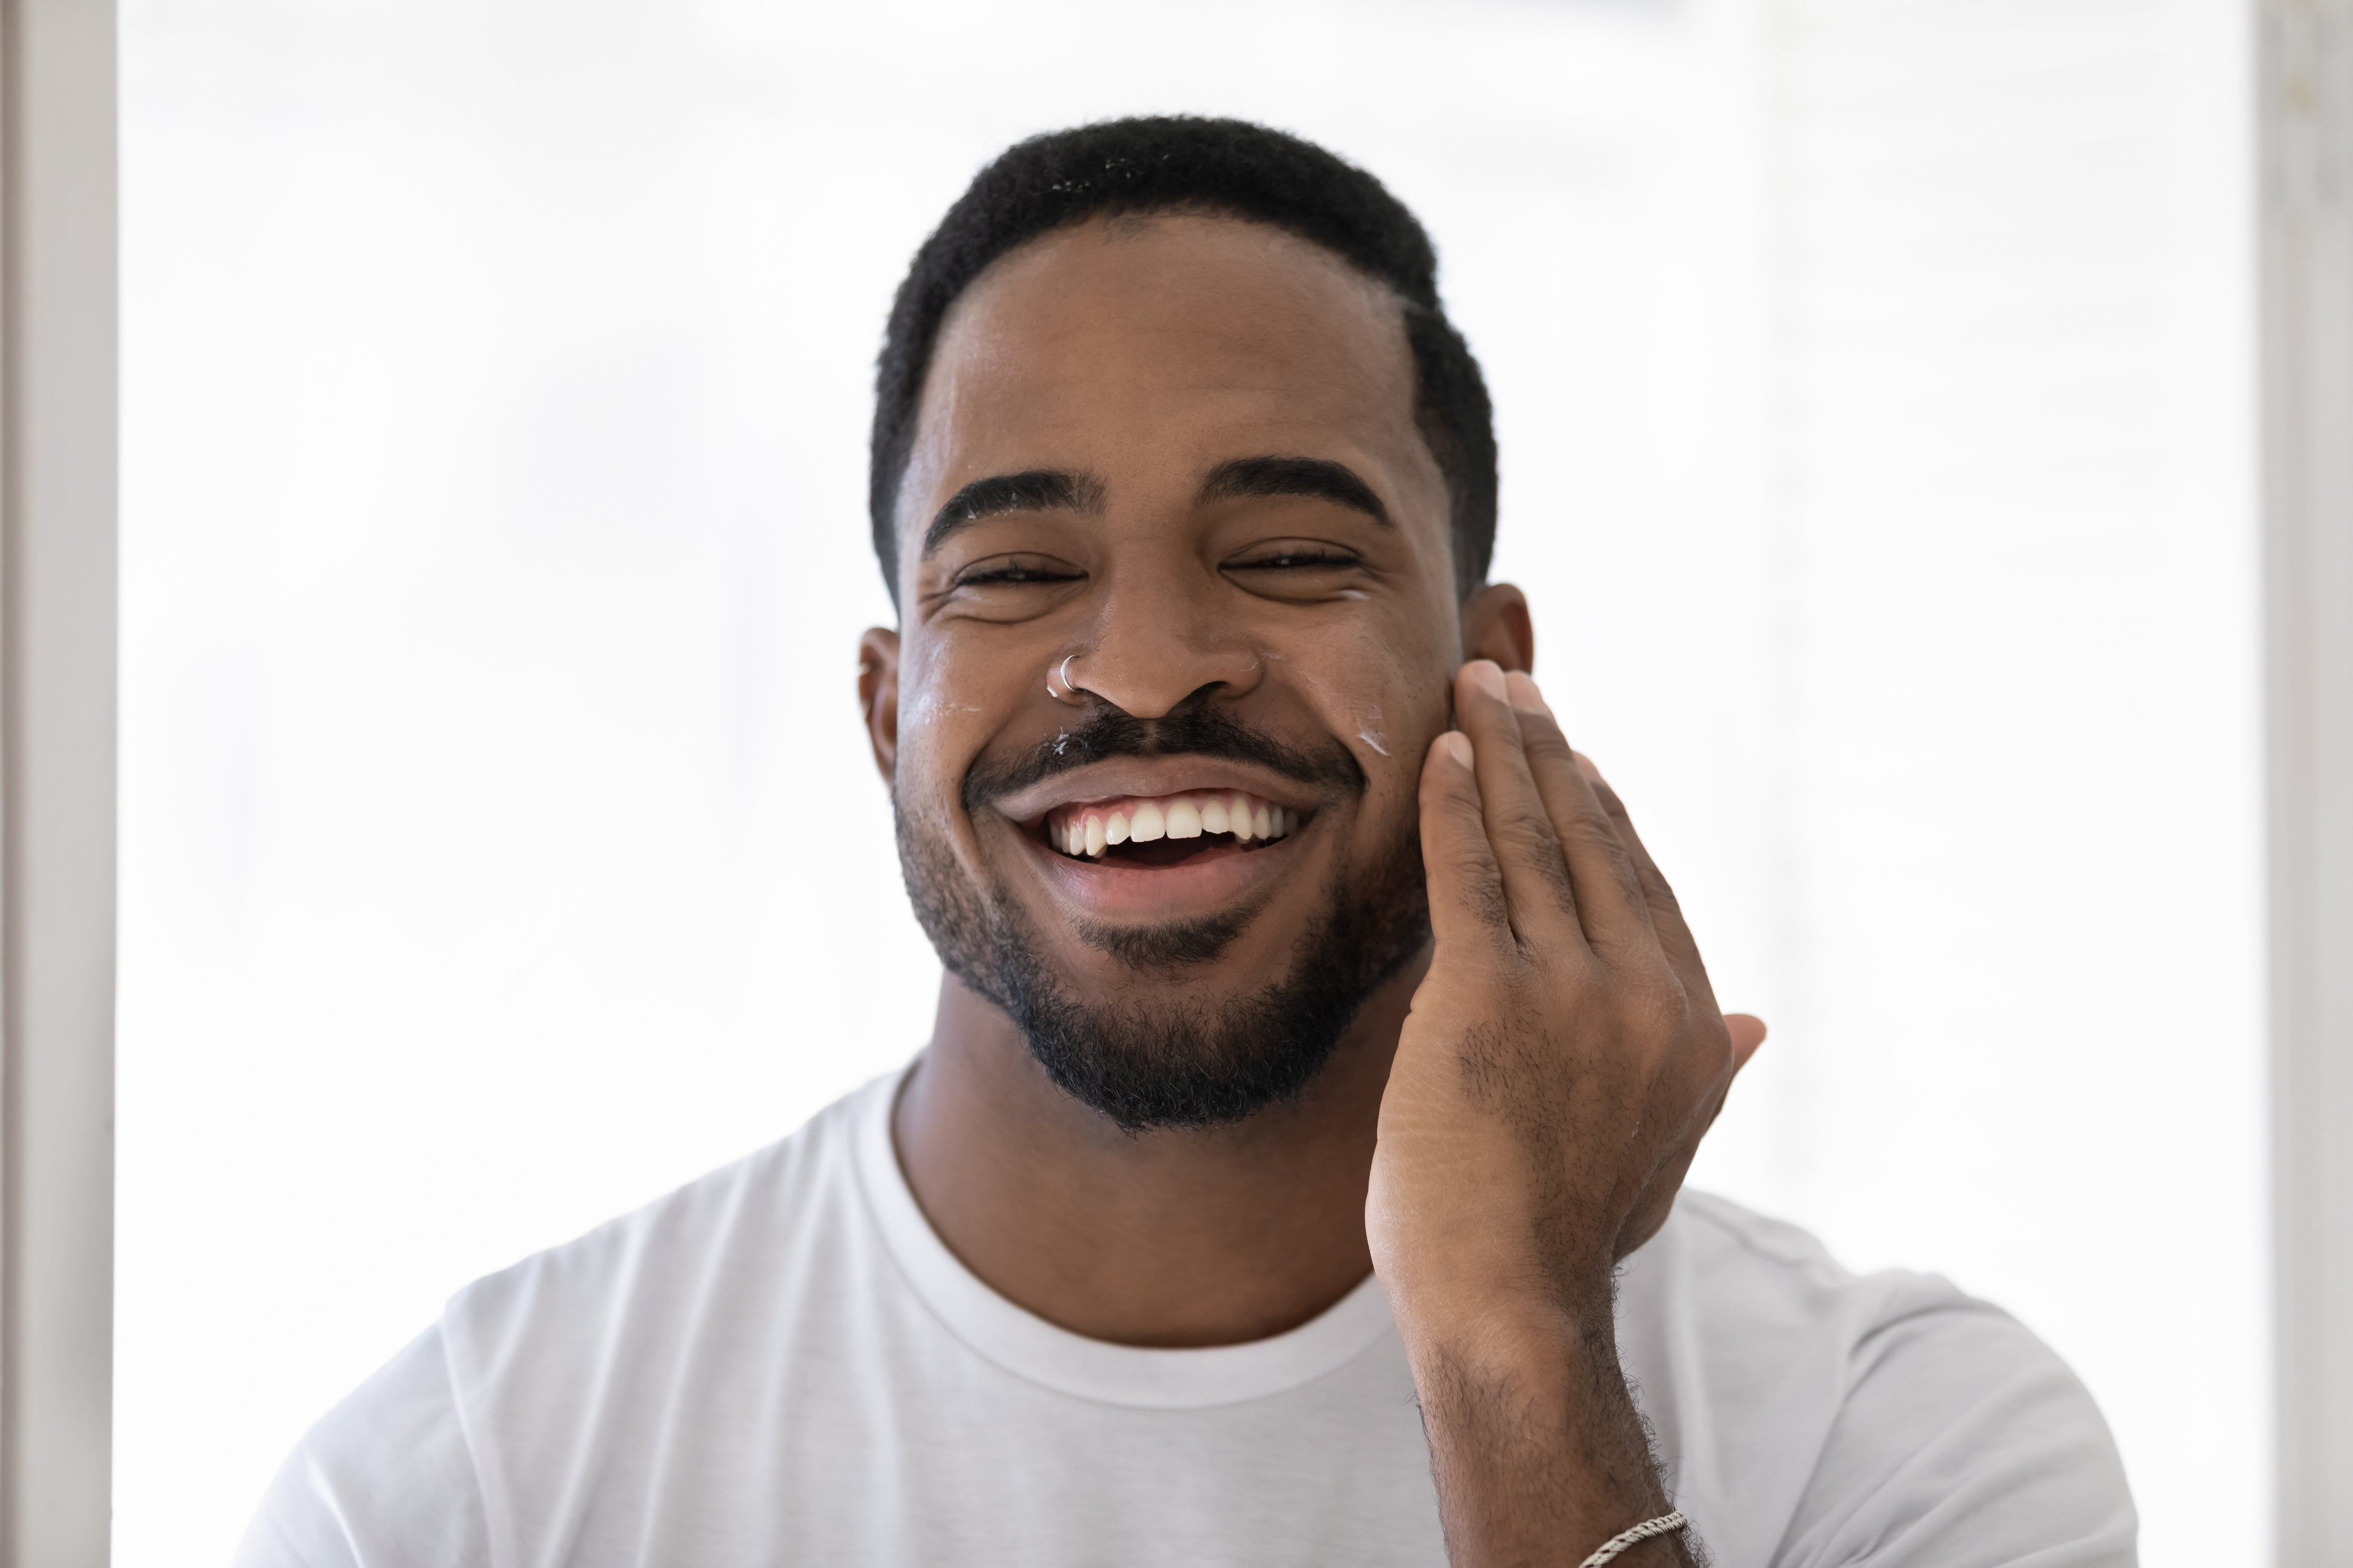 Man using 100% natural and organic Shea Butter & coconut oil fragranced moisturiser